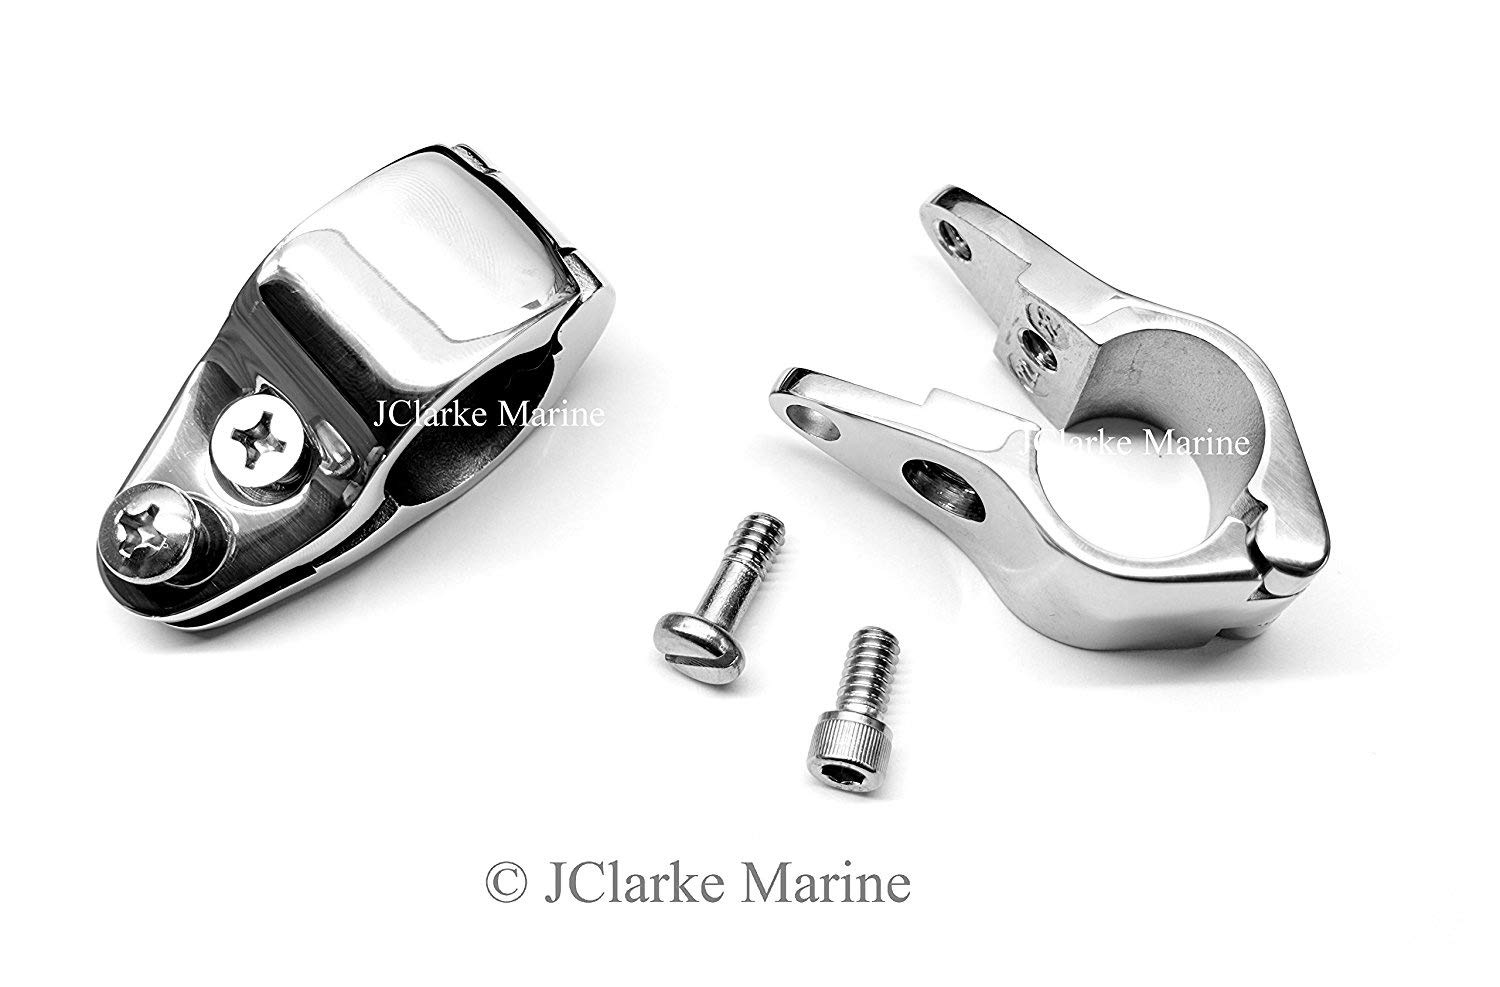 Pack of 1 - 1 (25mm) Adjustable Slide clamp heavy duty for bimini boat cover frame fitting stainless steel JClarke Marine